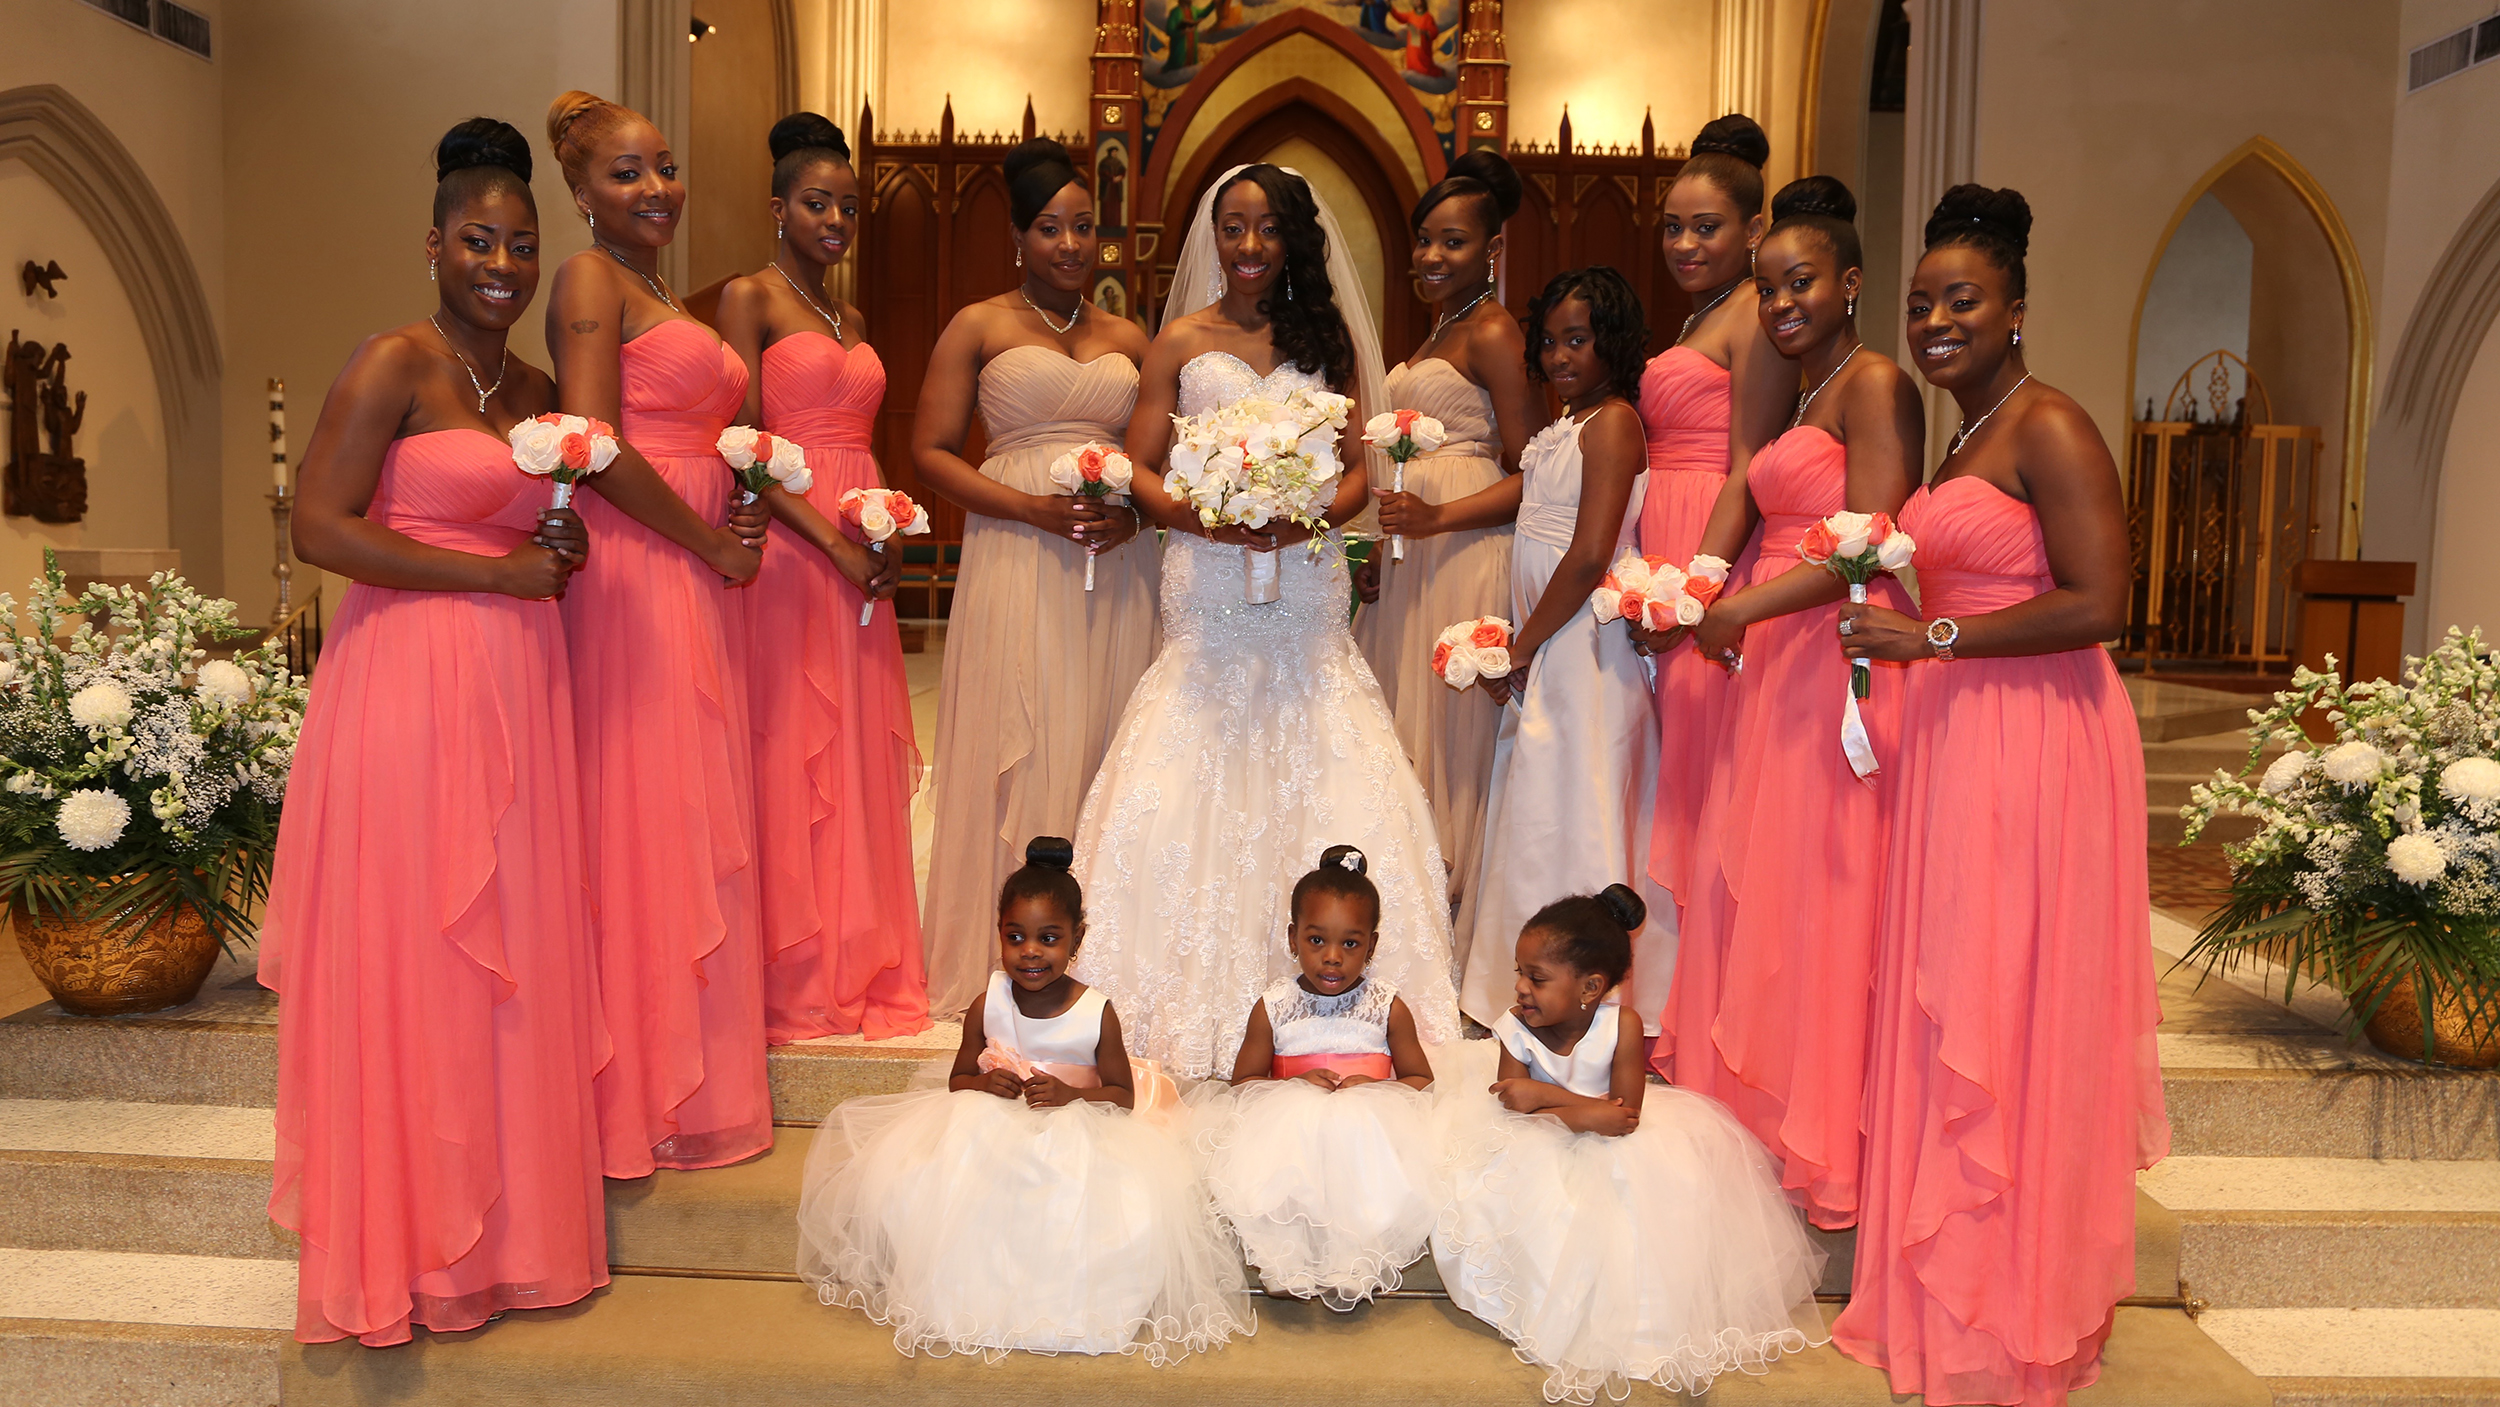 Bridesmaids And Bridal Party Tips What I Wish Knew Before Planning My Wedding